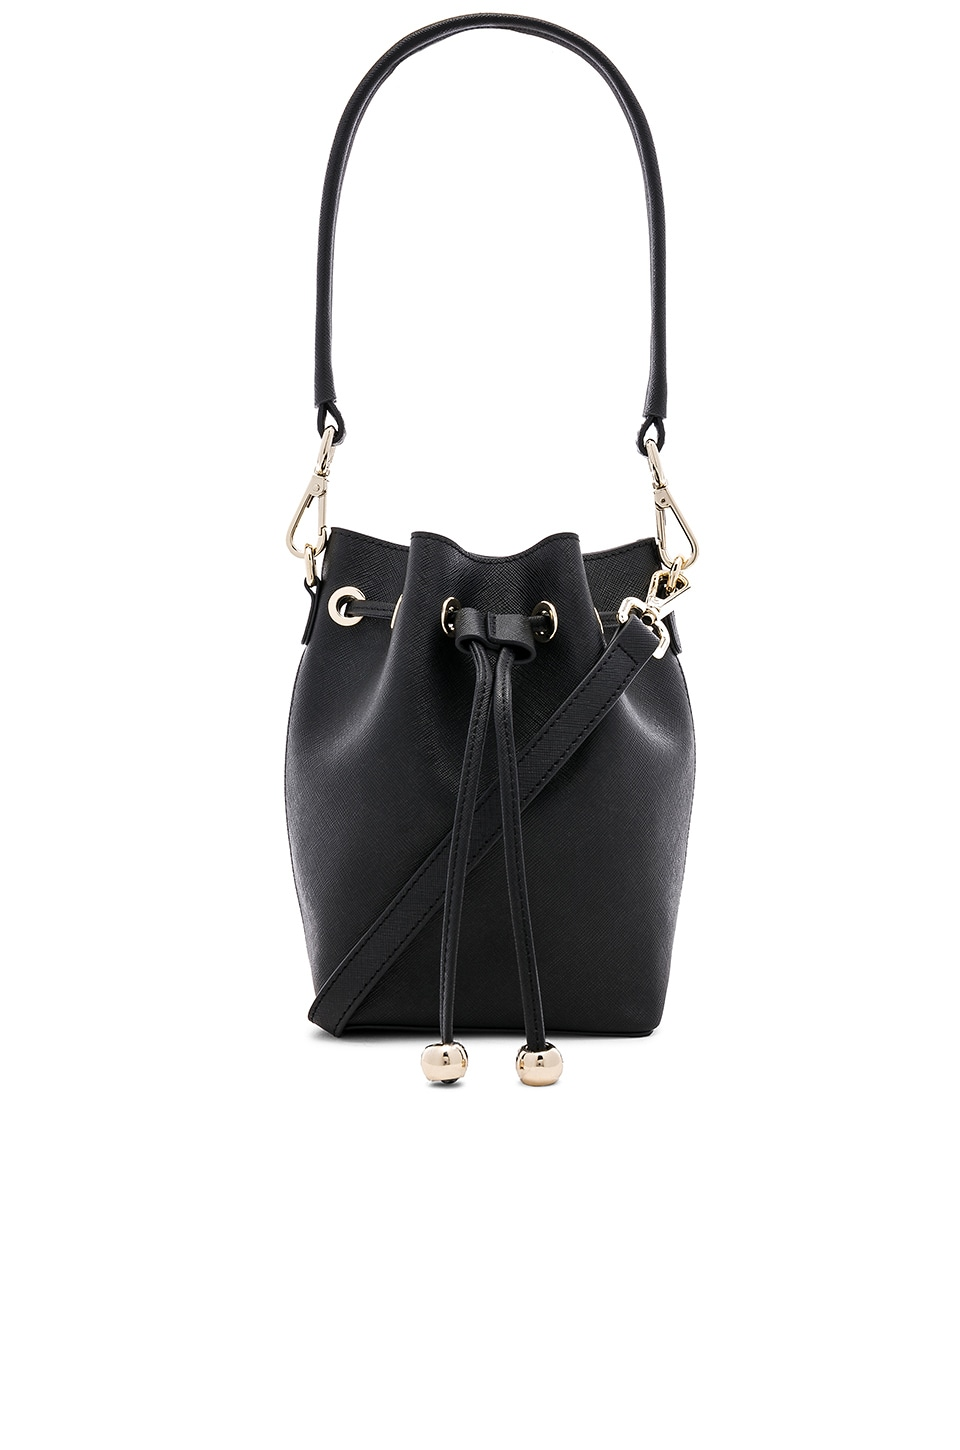 the daily edited Mini Bucket Bag in Black